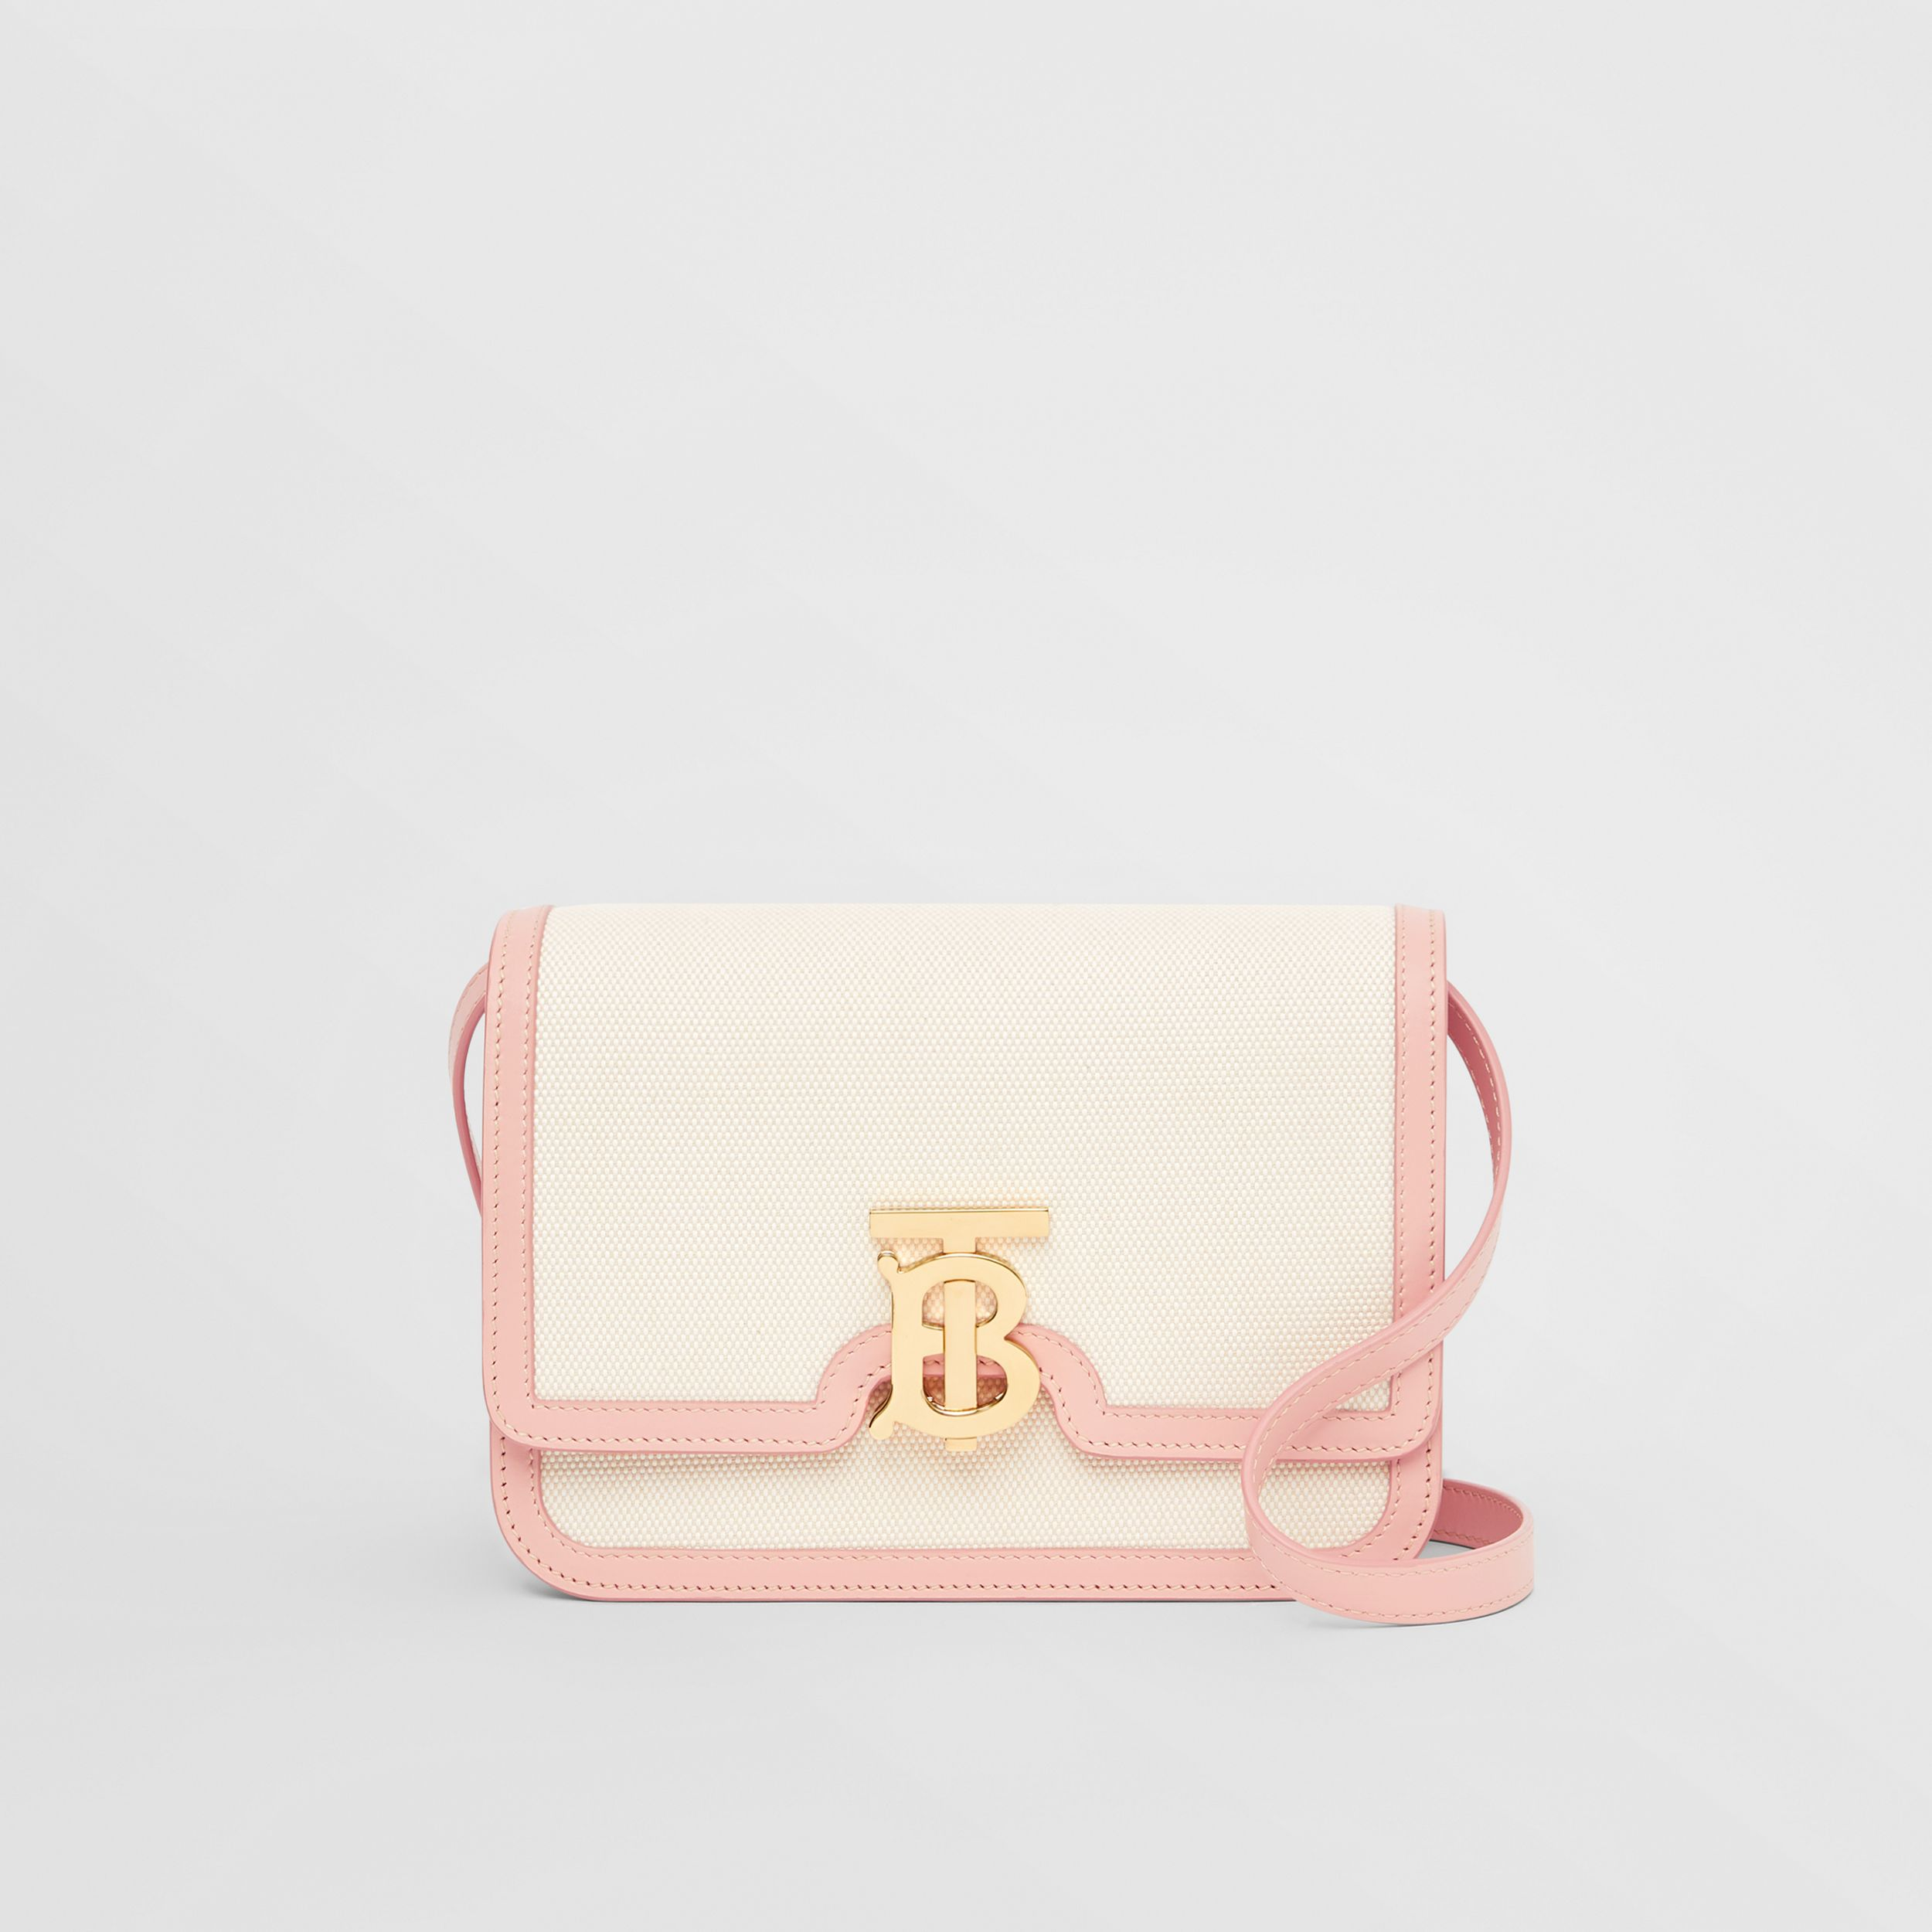 Small Two-tone Canvas and Leather TB Bag in Blush Pink - Women | Burberry - 1